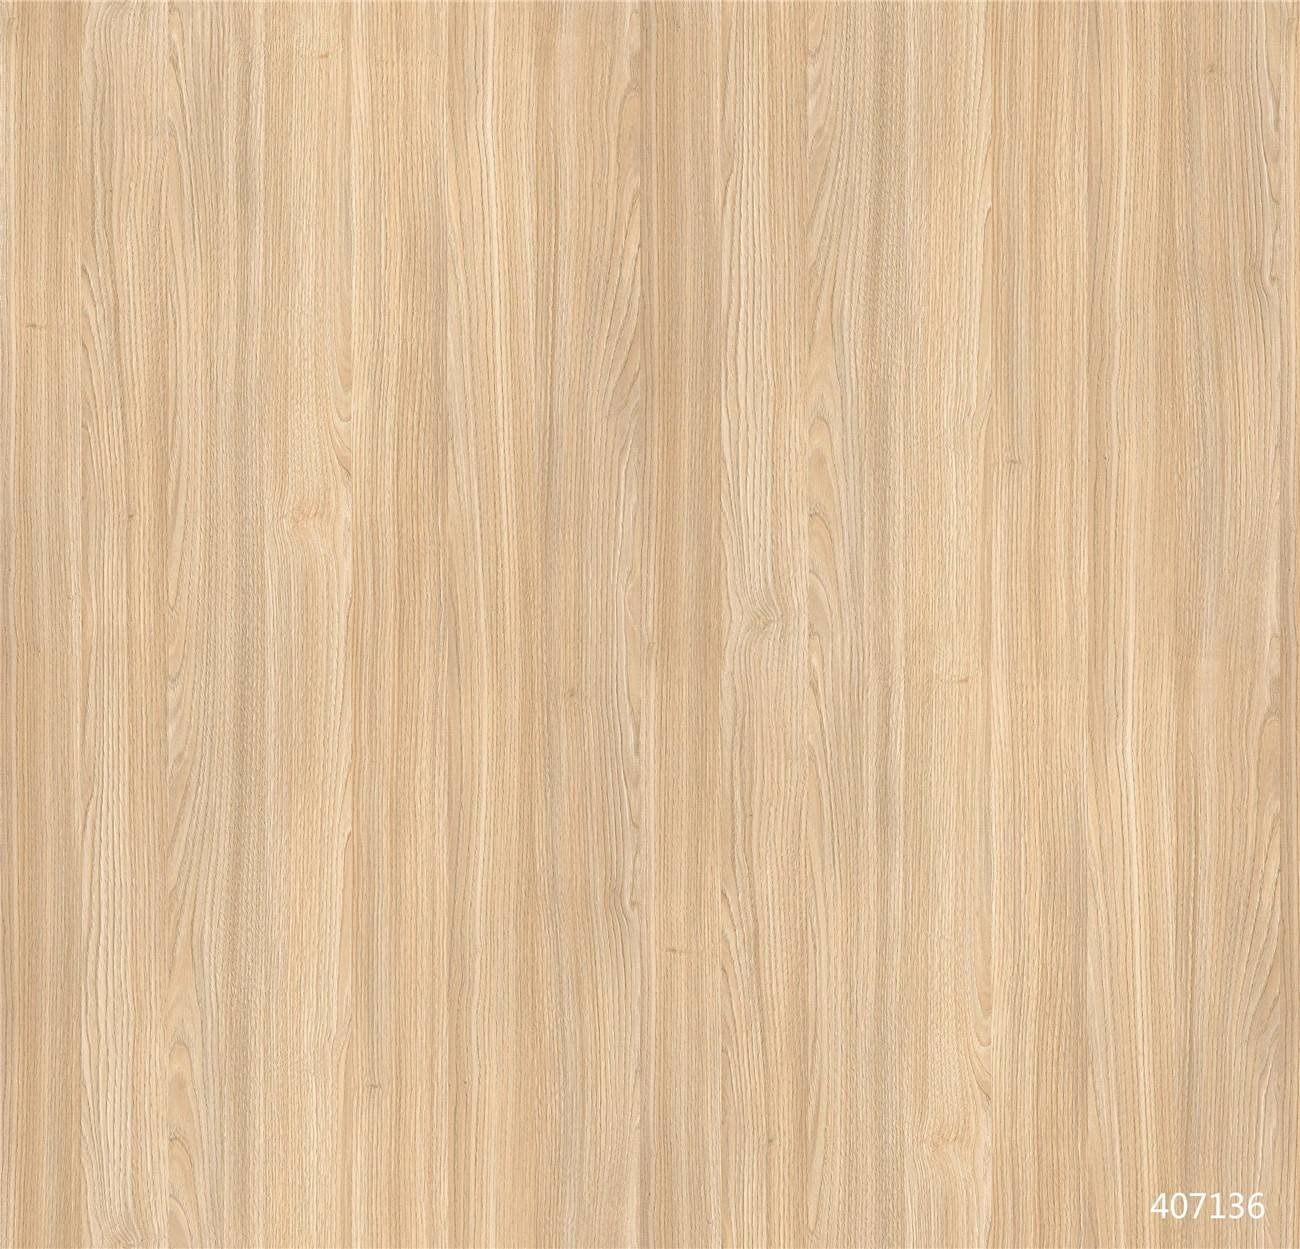 I.DECOR 407136  Kastanie Oak wood grain paper looks like real veneer ID Series 2017 image64